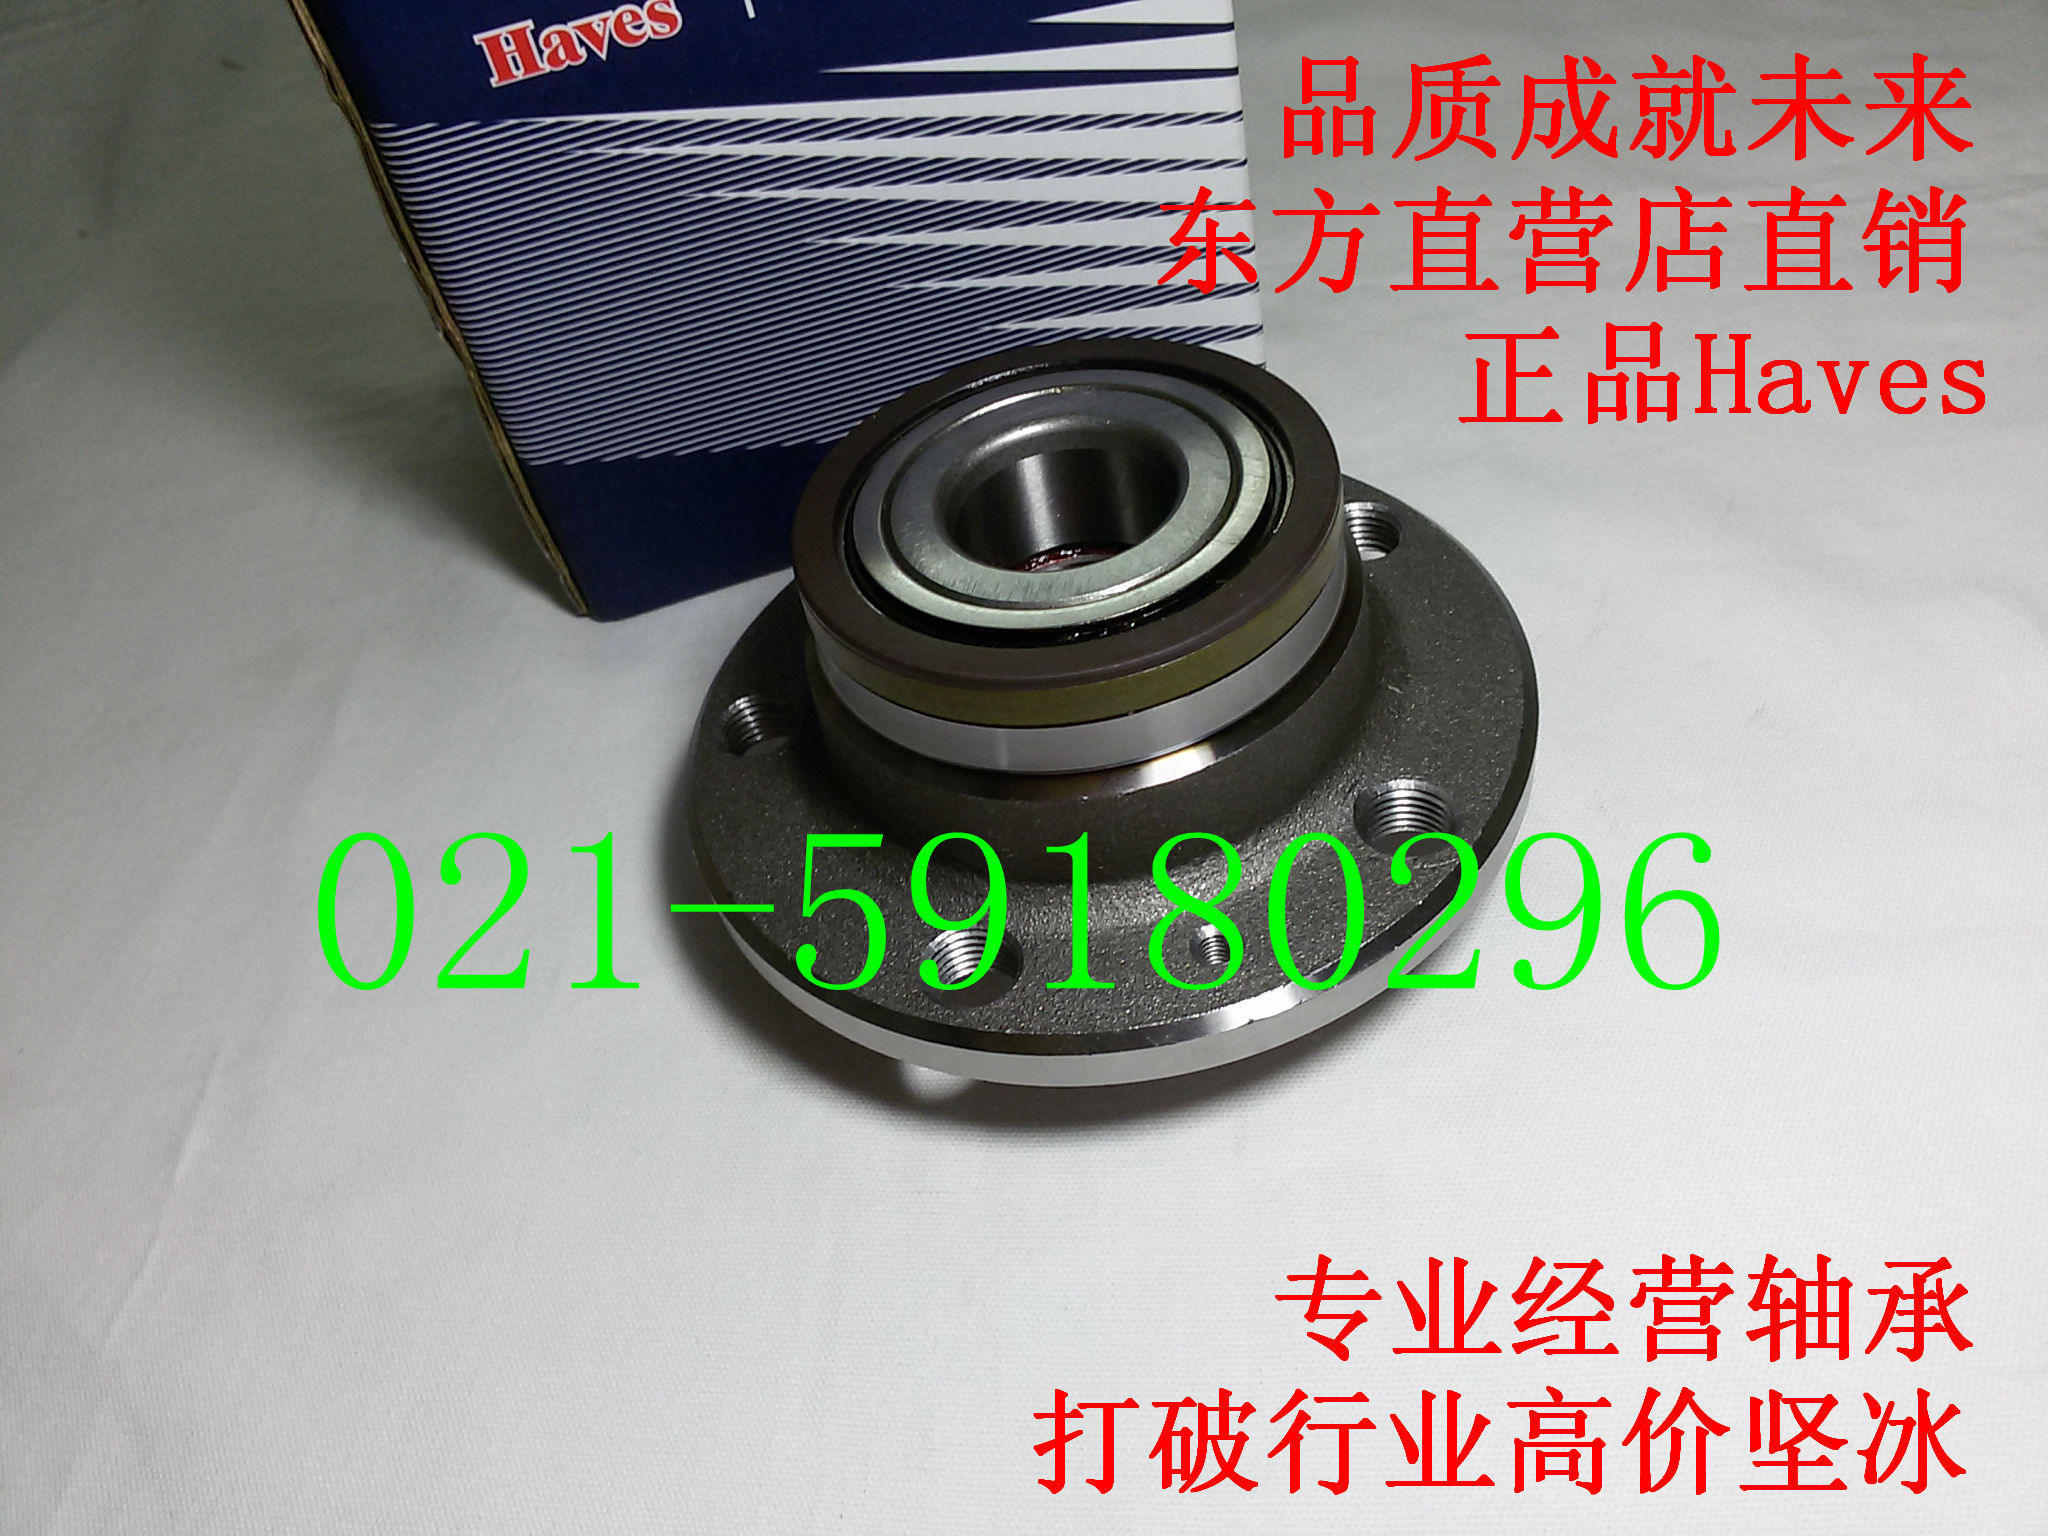 Authentic haves shanghai volkswagen new lavida/new jetta/lang move/rear wheel bearing/front wheel bearings Wheelboss